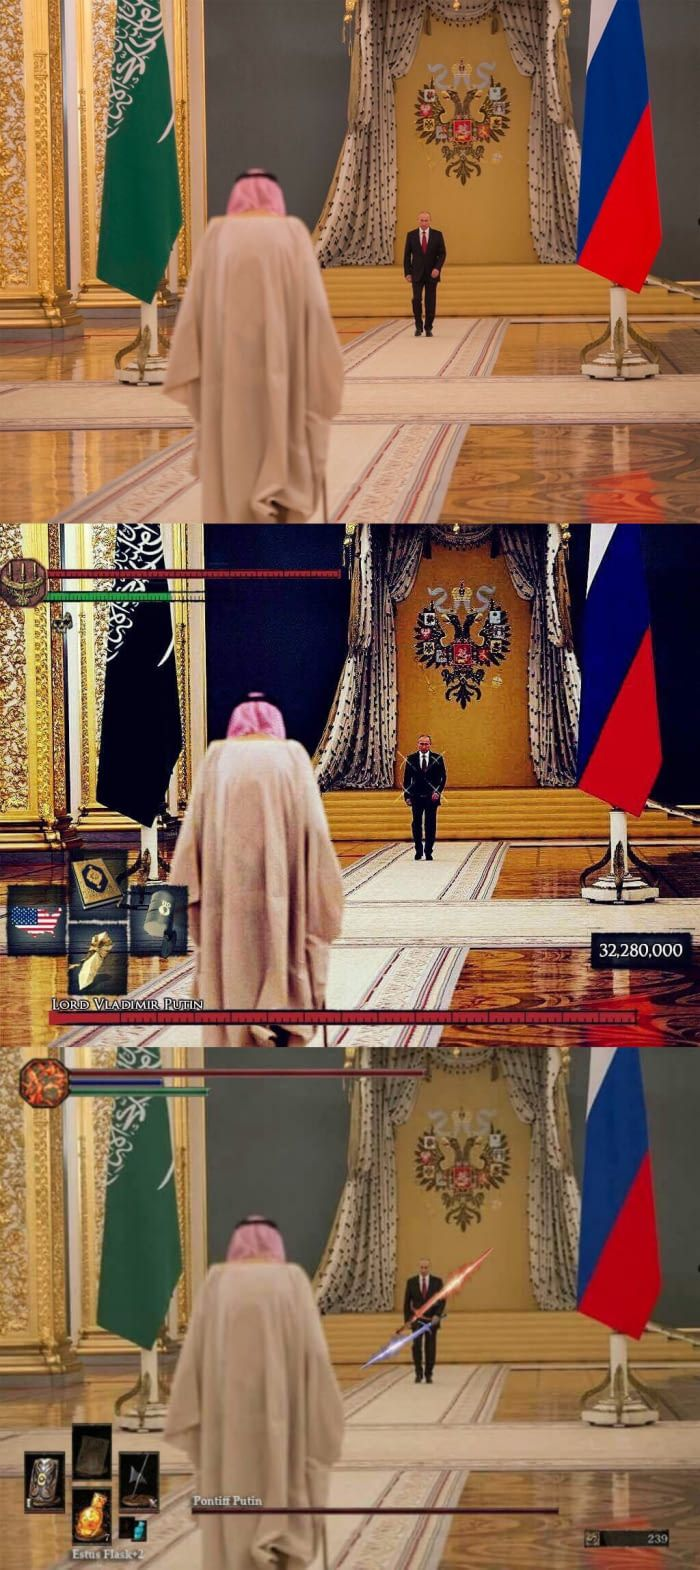 Saudi King meeting Putin photo looks like a Dark Souls boss battle